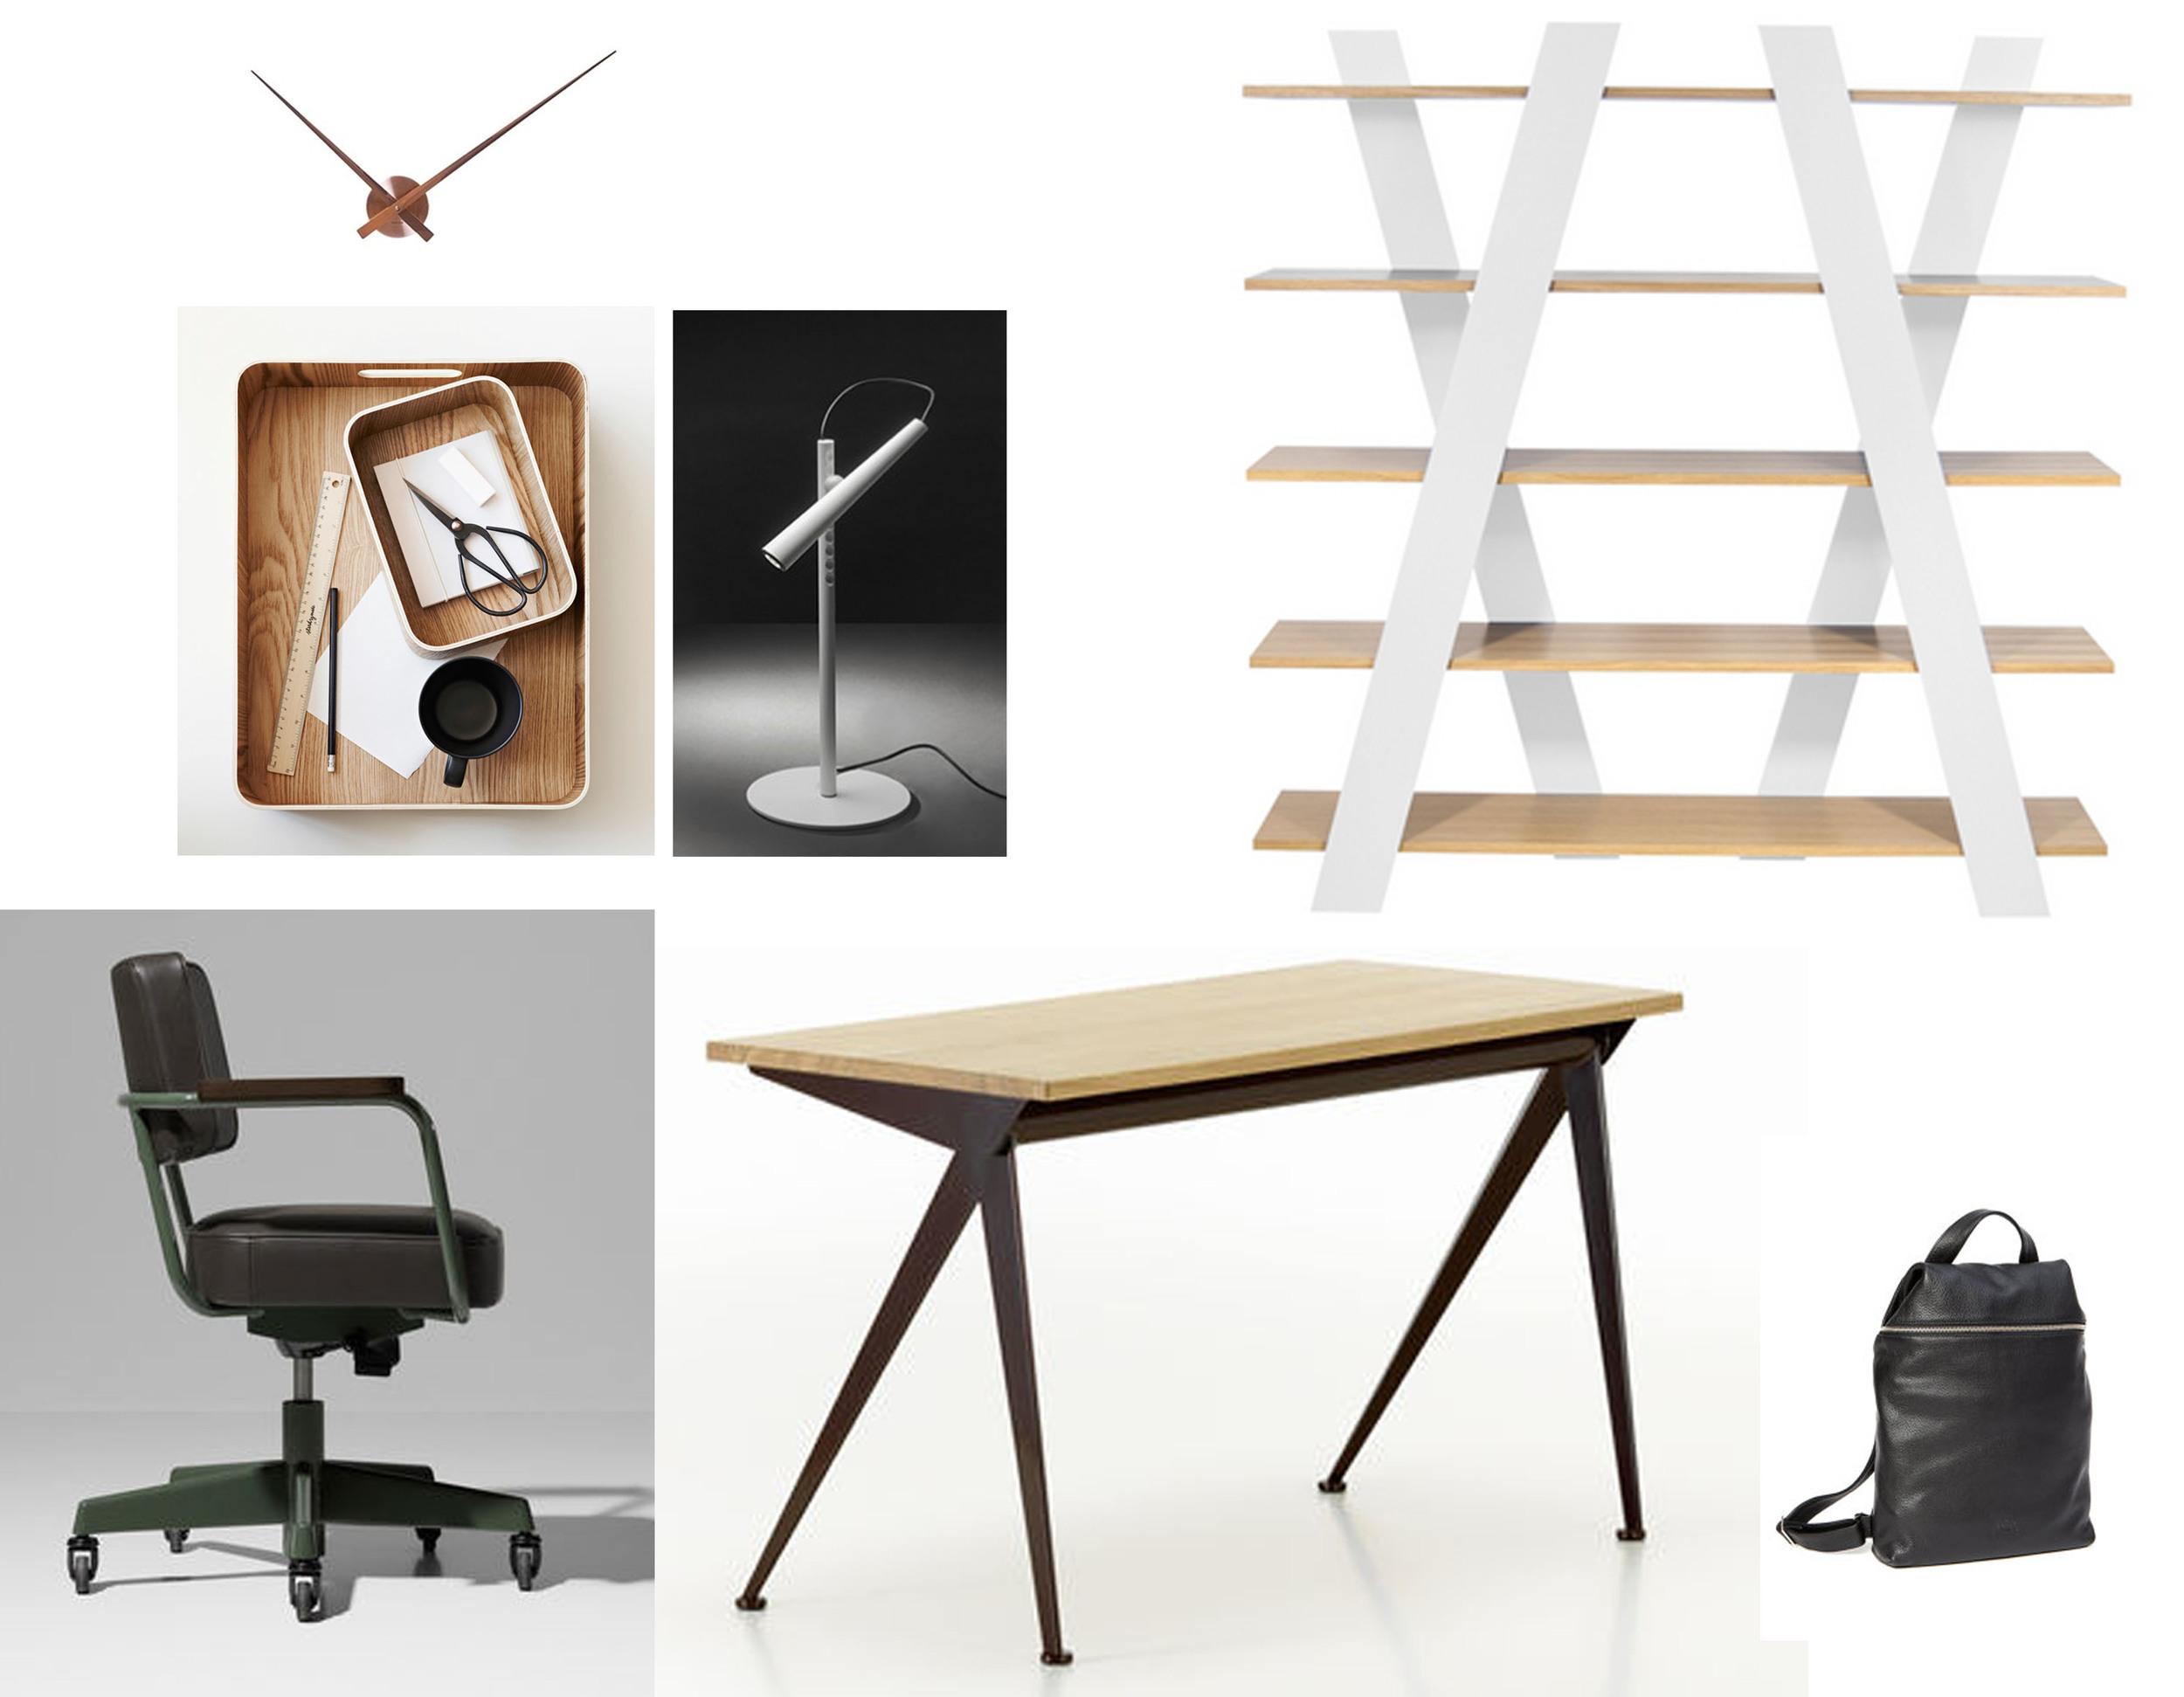 chair Jean Prouve Raw Office Edition  Vitra  - Jean Prouve Compas  Vitra  - desk lamp Magneto  Foscarini  - shelves Wind  Temahome  - wooden desk trays found on  The Design Files  - minimalist wall clock Little Big Time  Karlsson - black leather backpack  Leduxbags